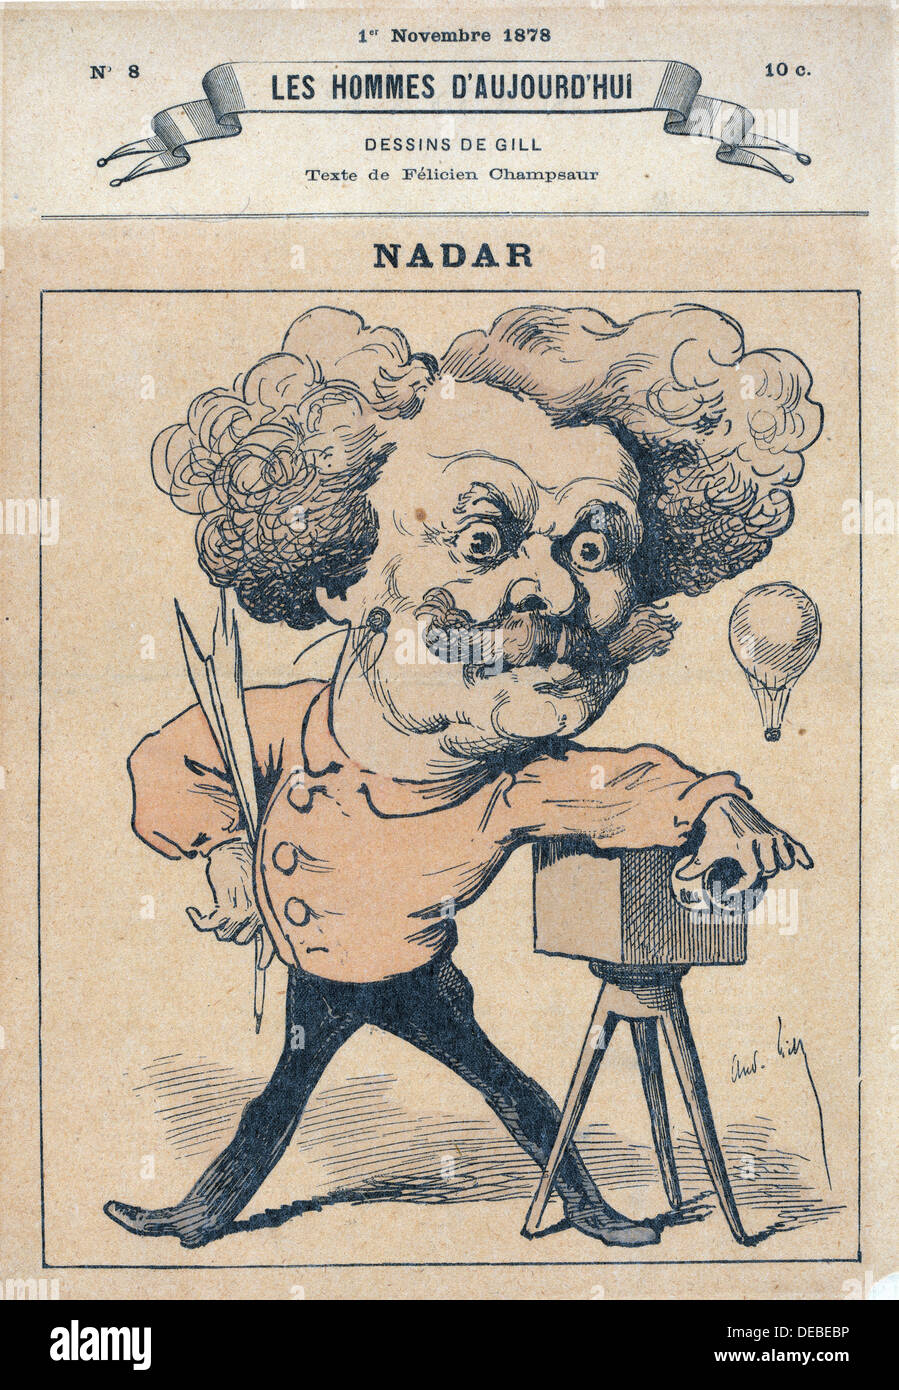 André Gill - French caricature of photographer and balloonist Nadar - 1878 - Stock Image